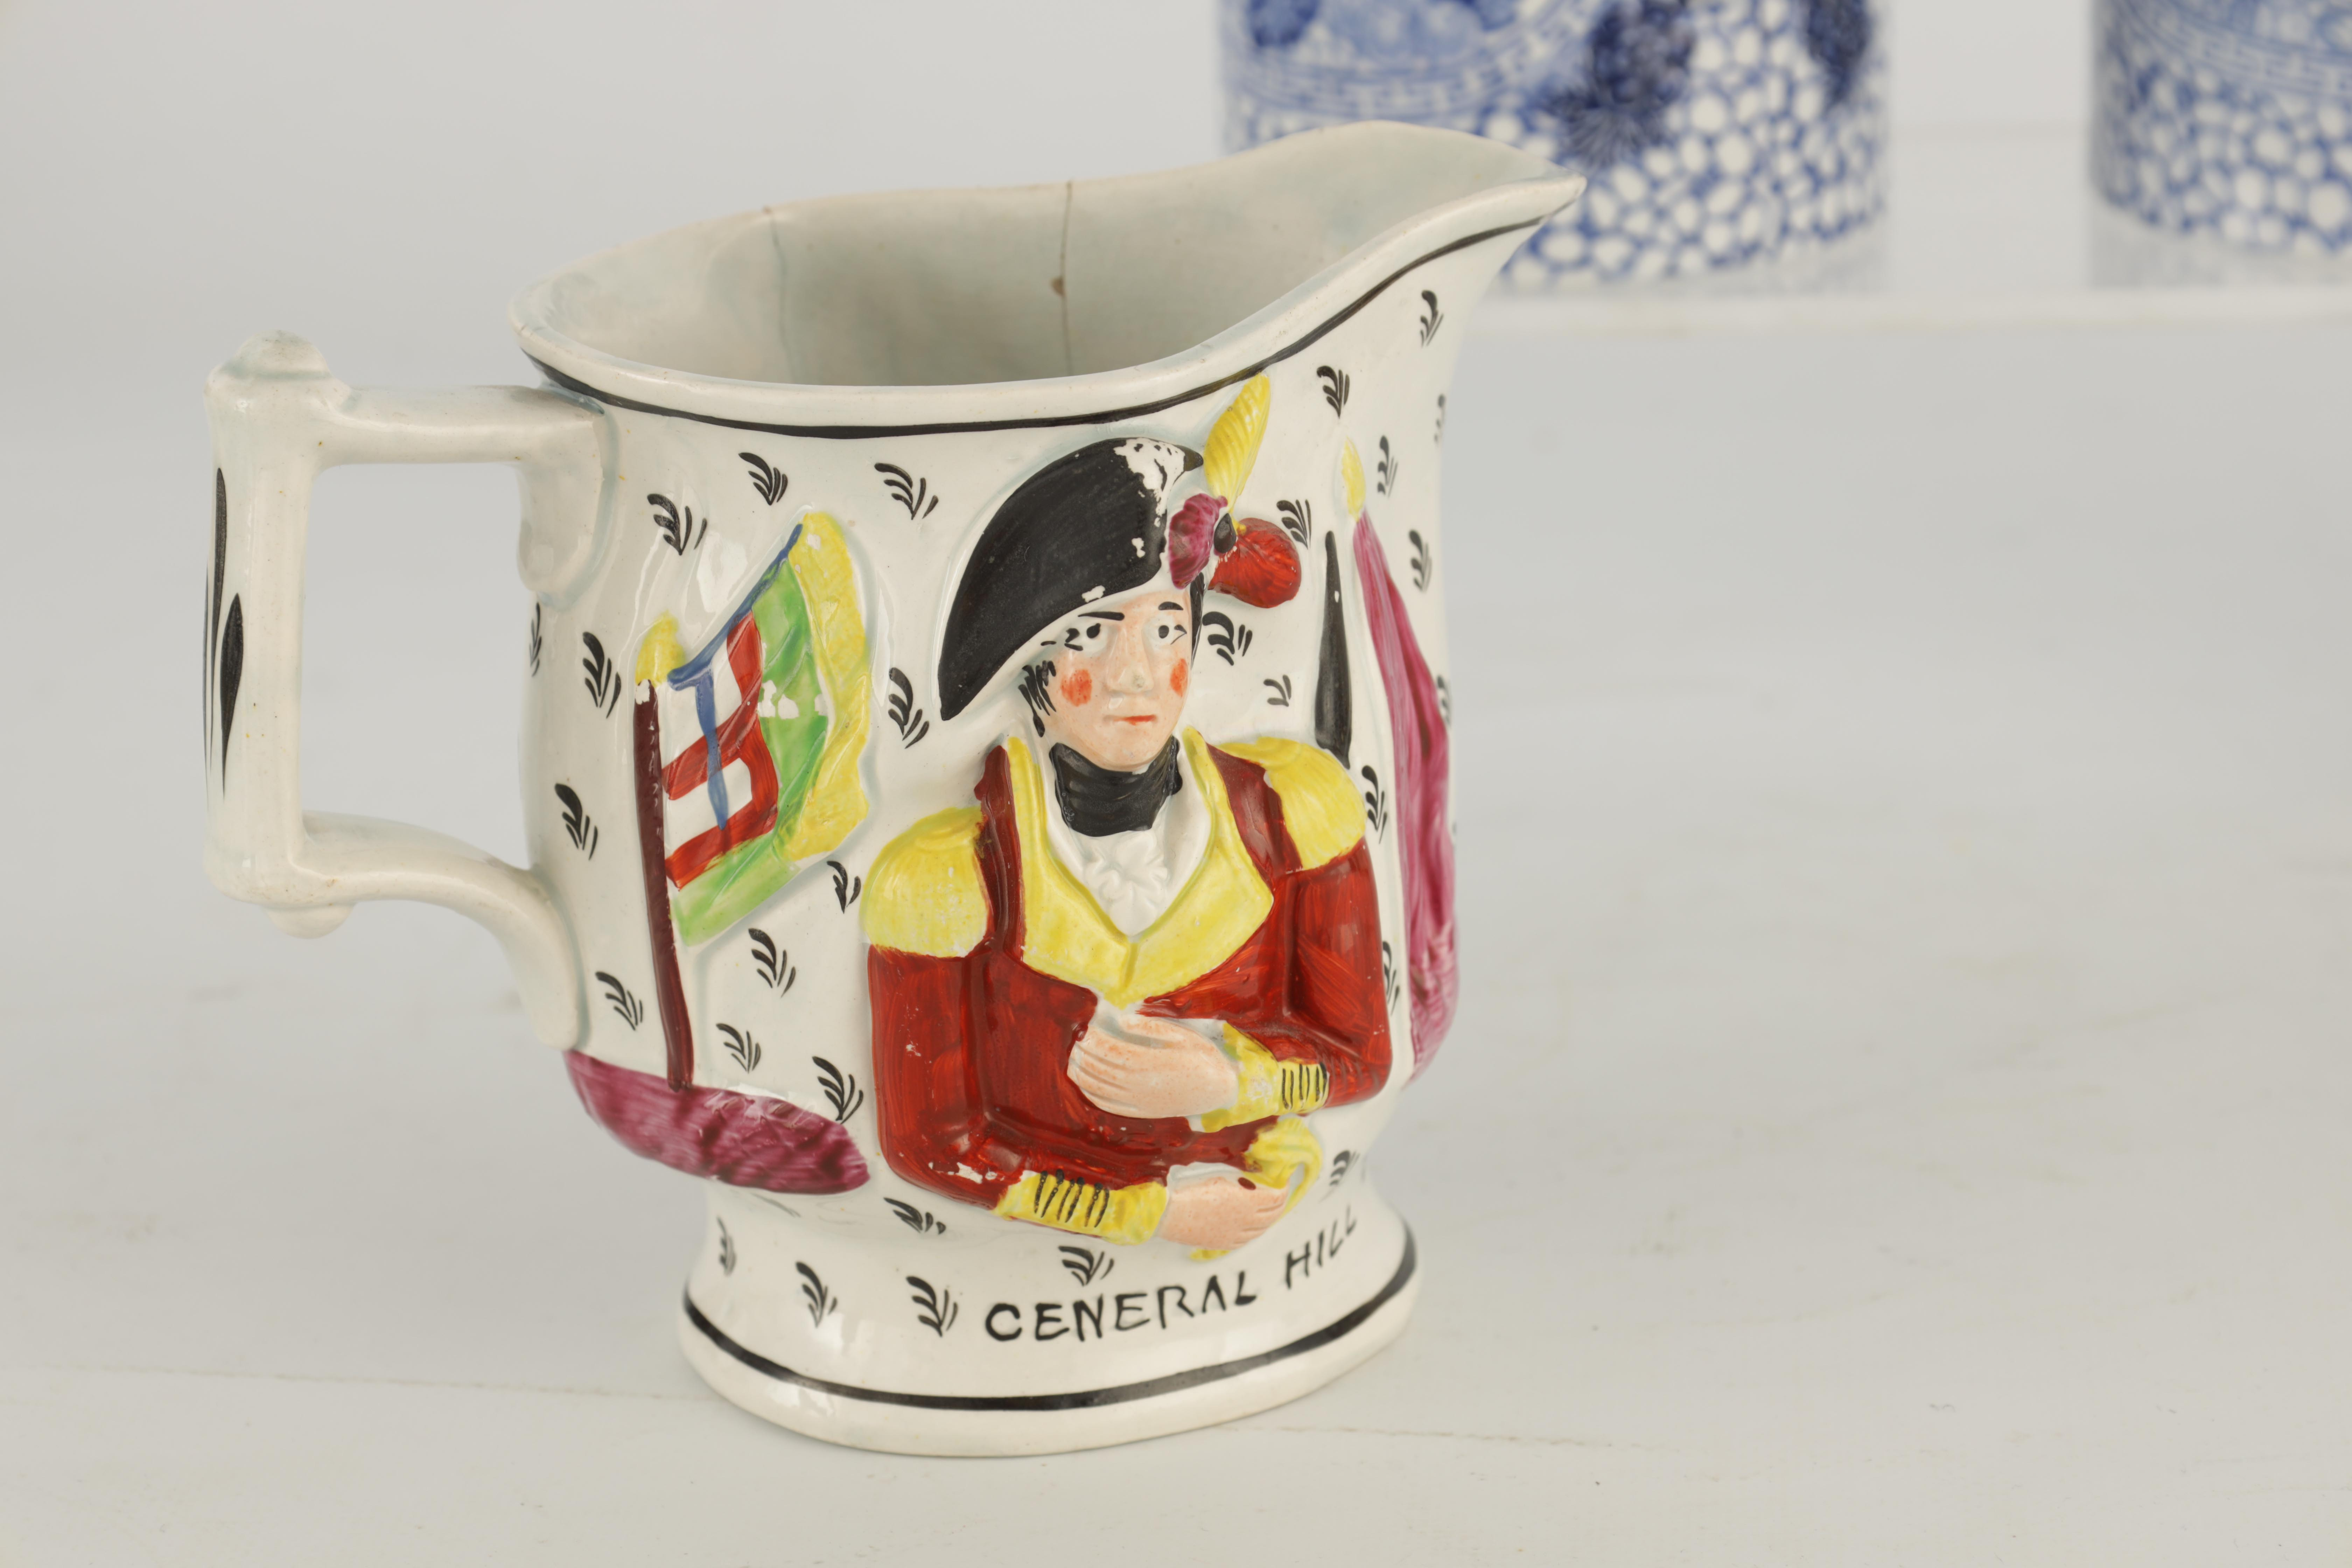 A 19TH CENTURY PEARLWARE JUG WITH RELIEF MOULDED PANELS OF LORD WELLINGTON AND GENERAL HILL on a - Image 8 of 17